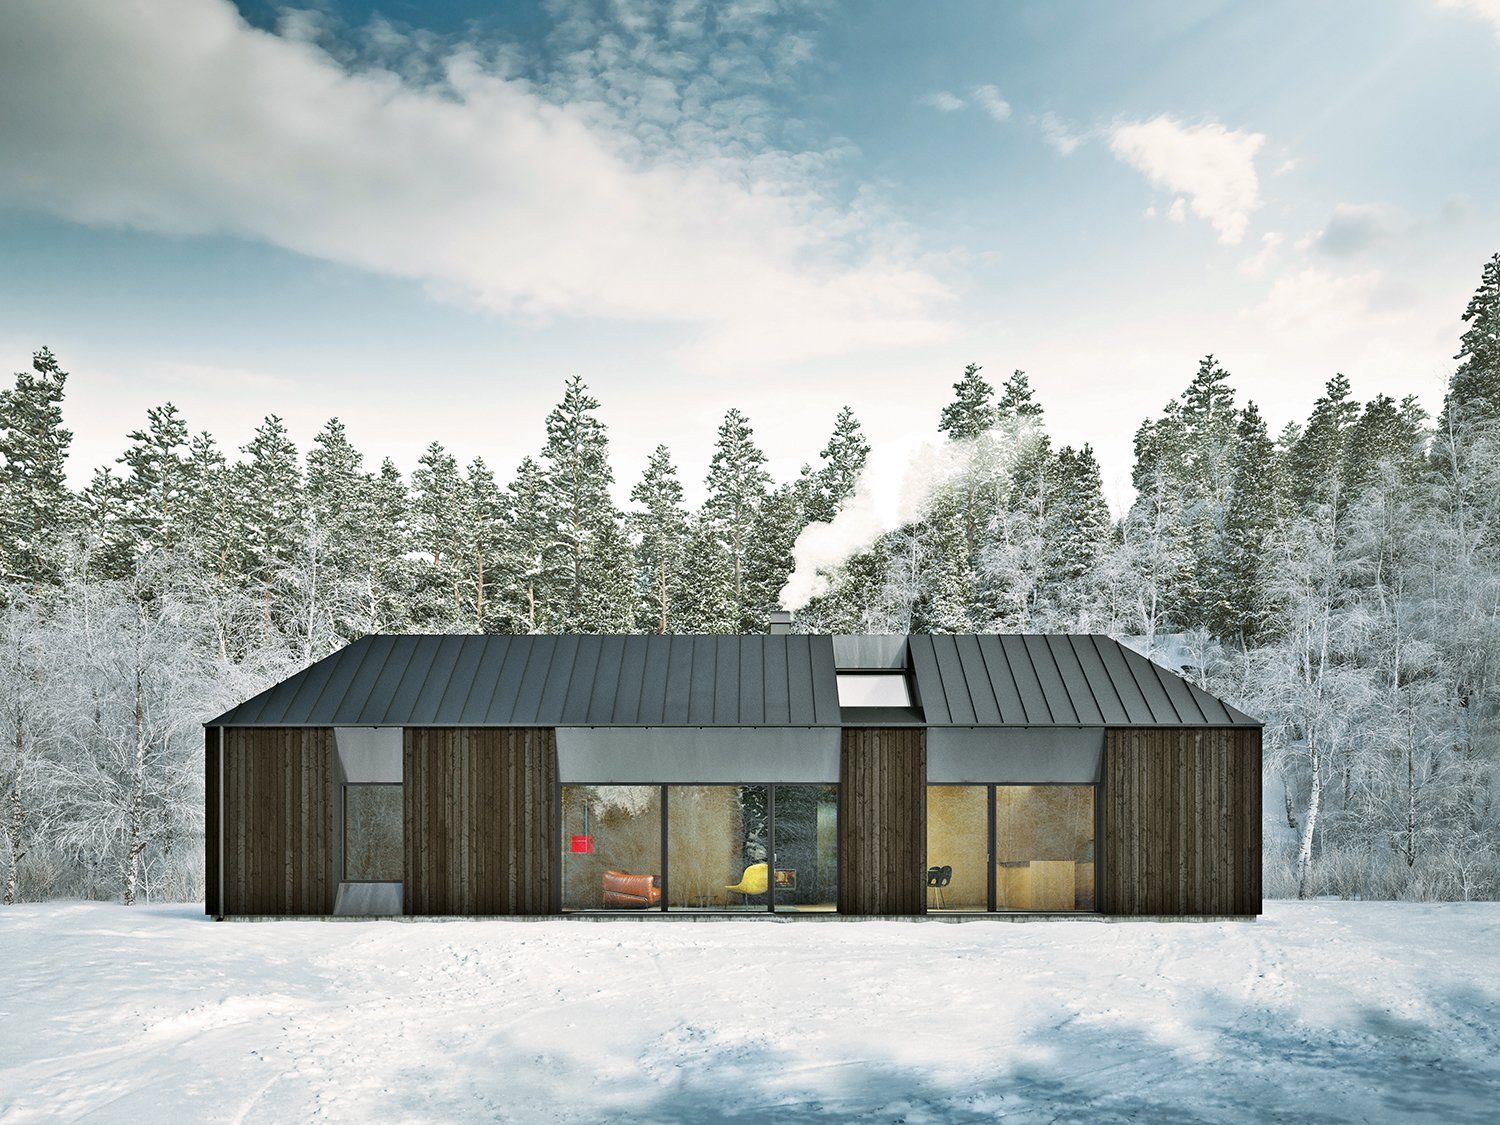 Articles about claesson koivisto runes scandinavian prefab prototype on Dwell.com